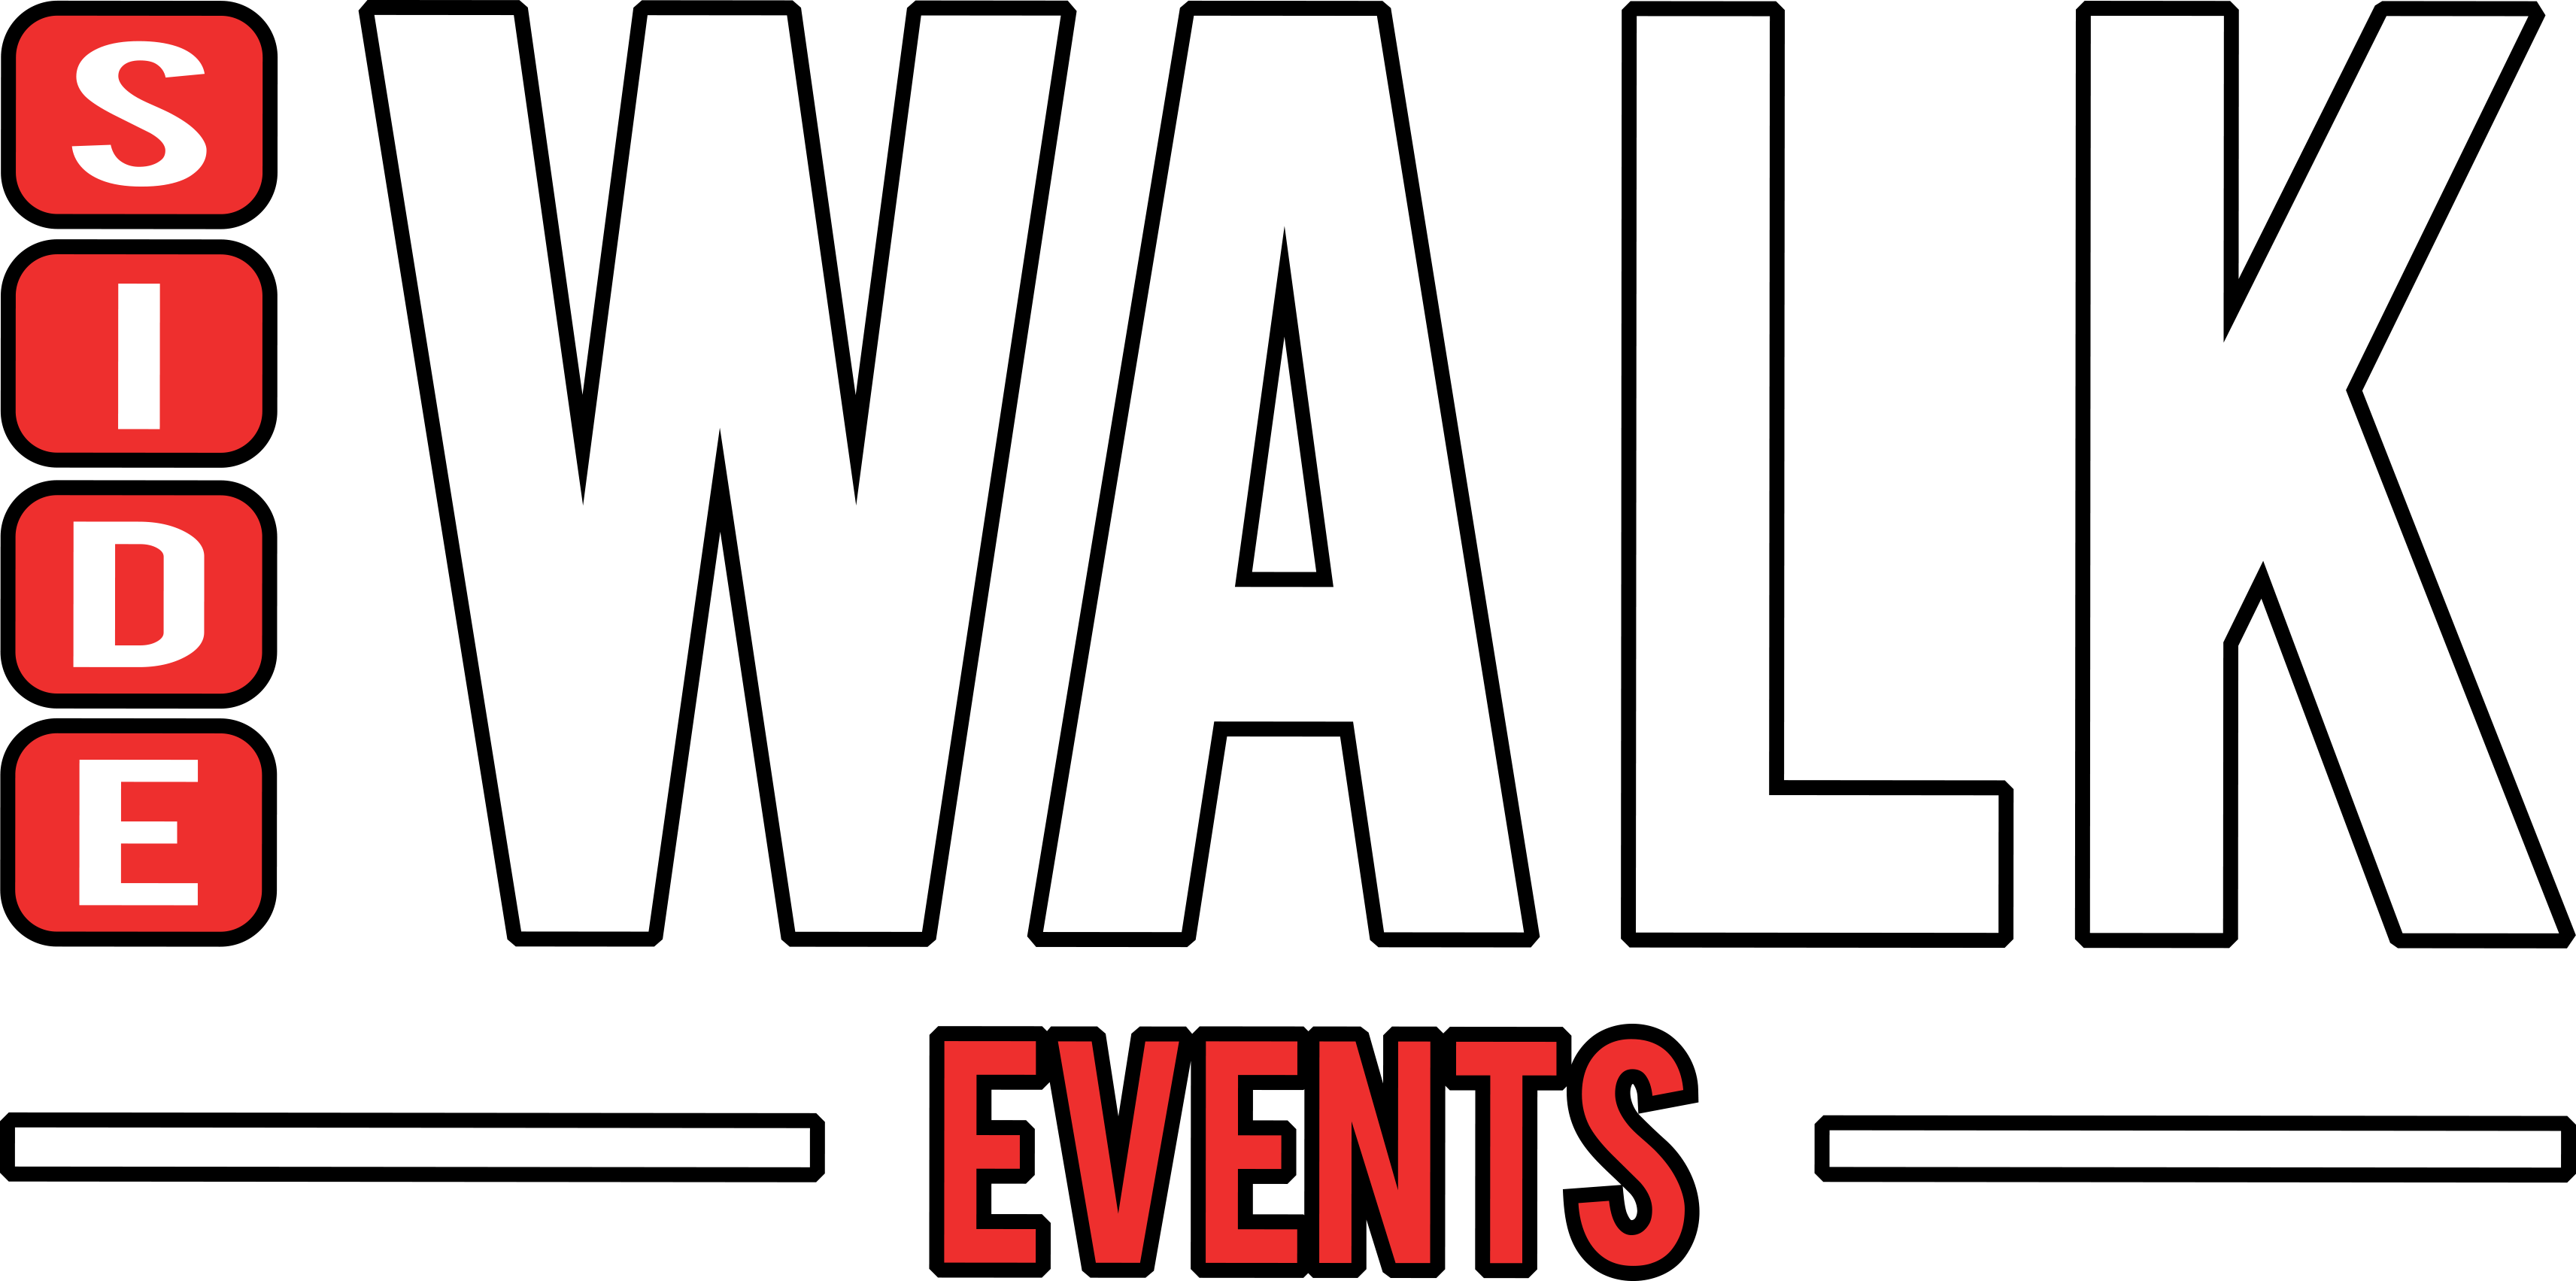 Sidewalk Events